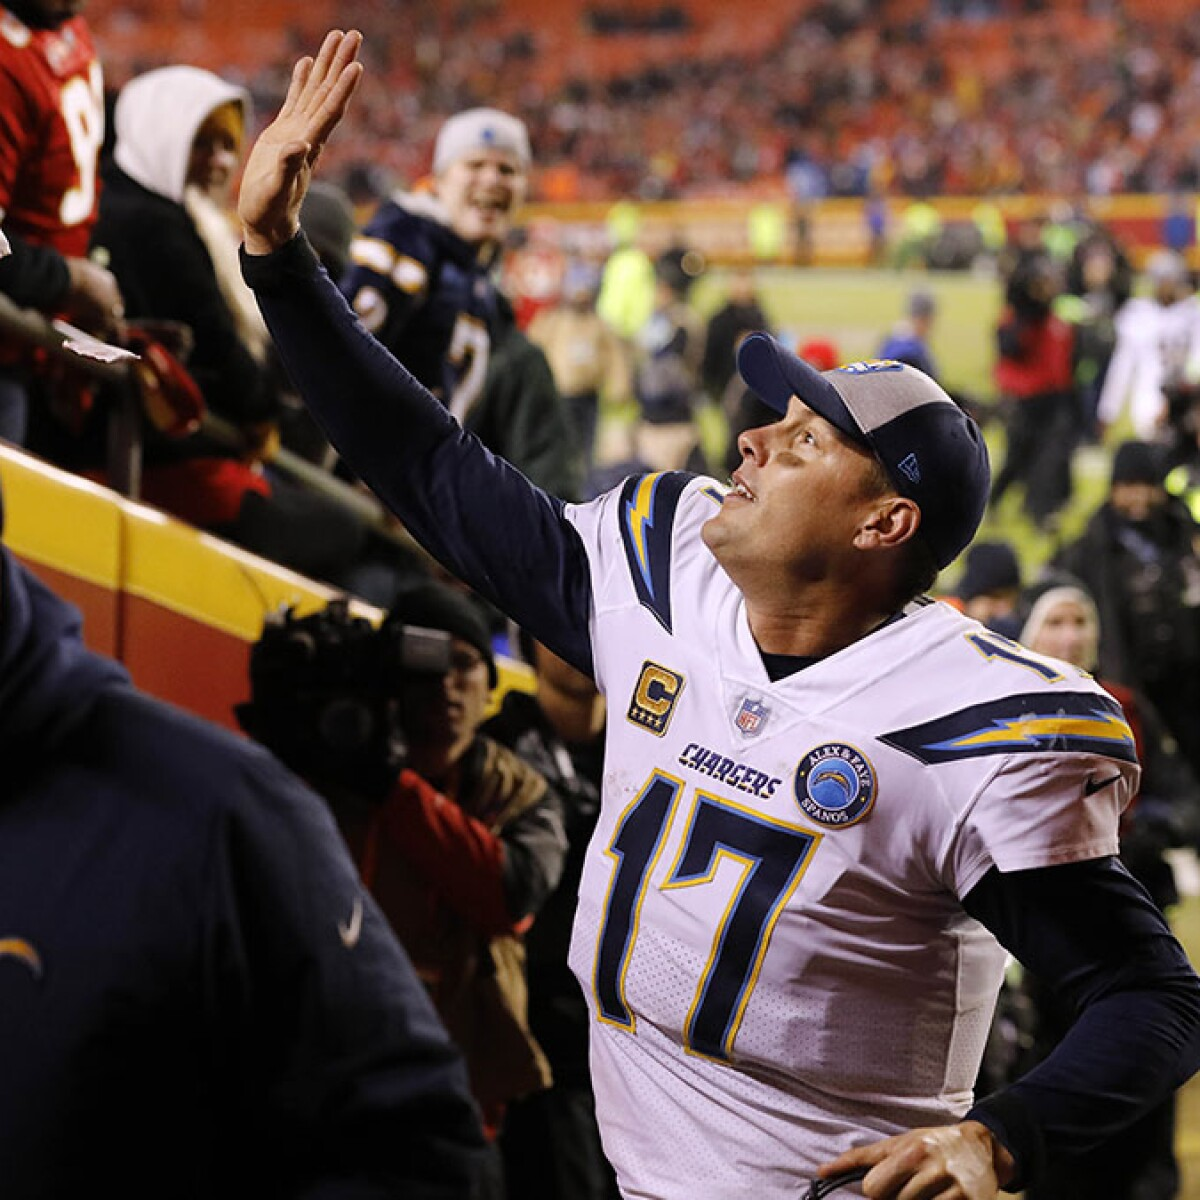 COLUMN: Cheer for the Chargers? Not going to happen